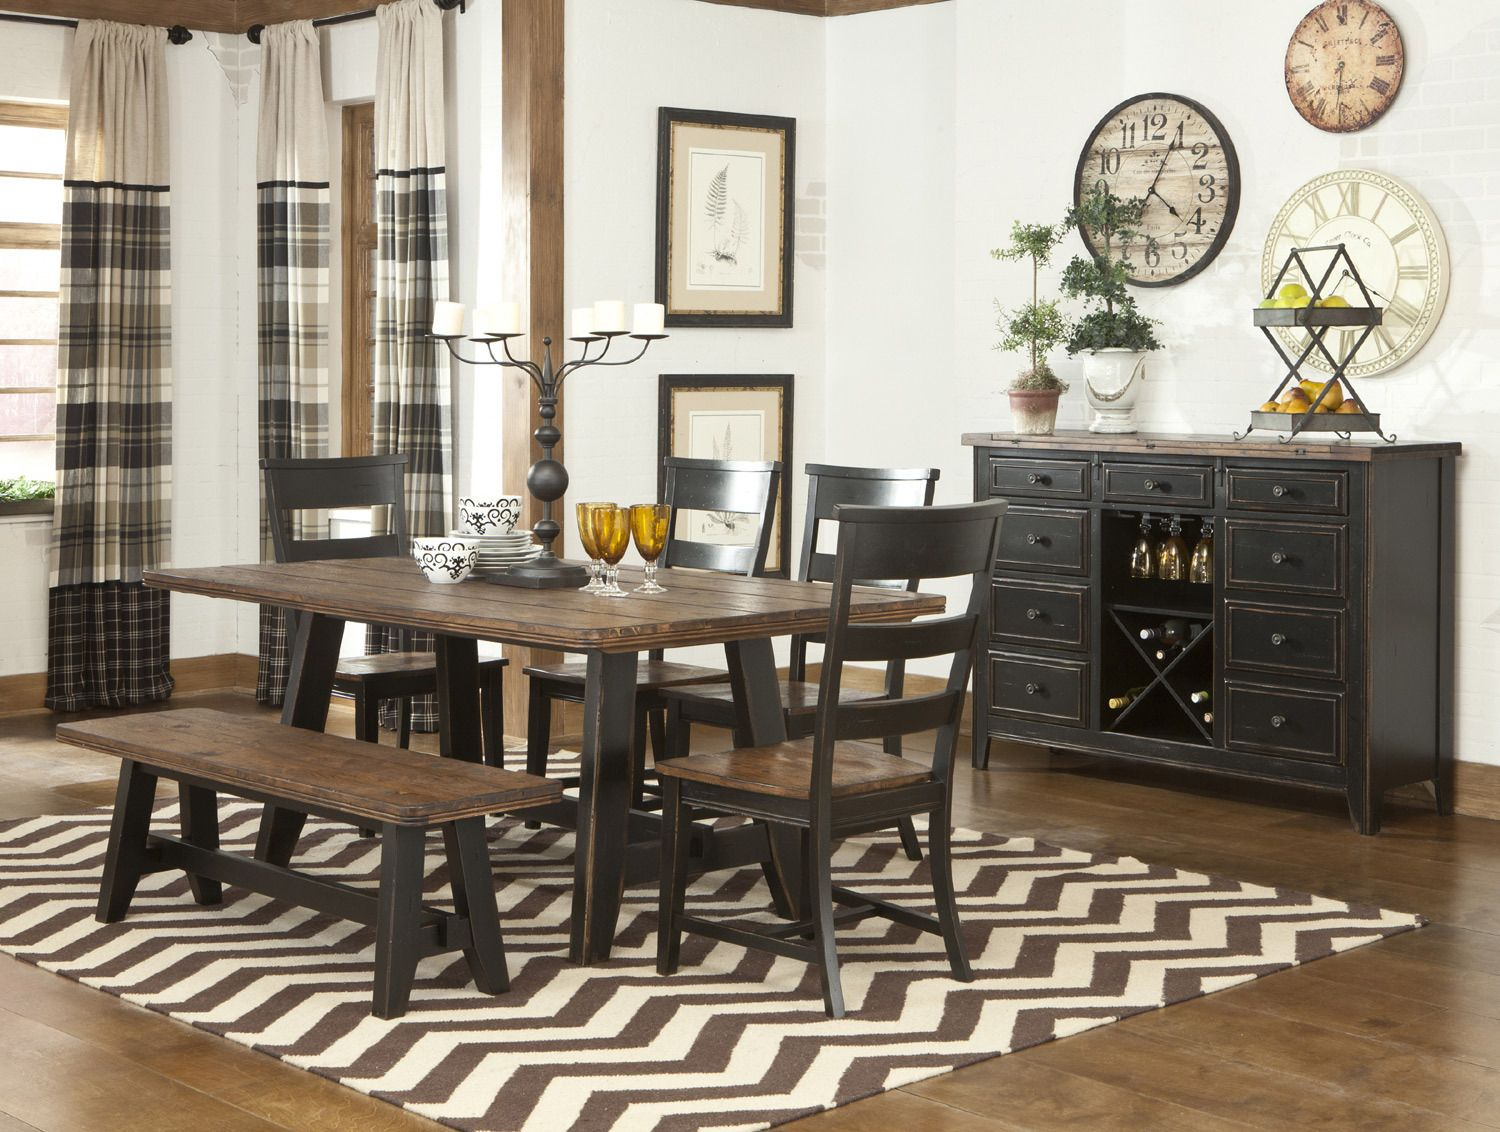 Winchester rectangular trestle table dining room set by intercon